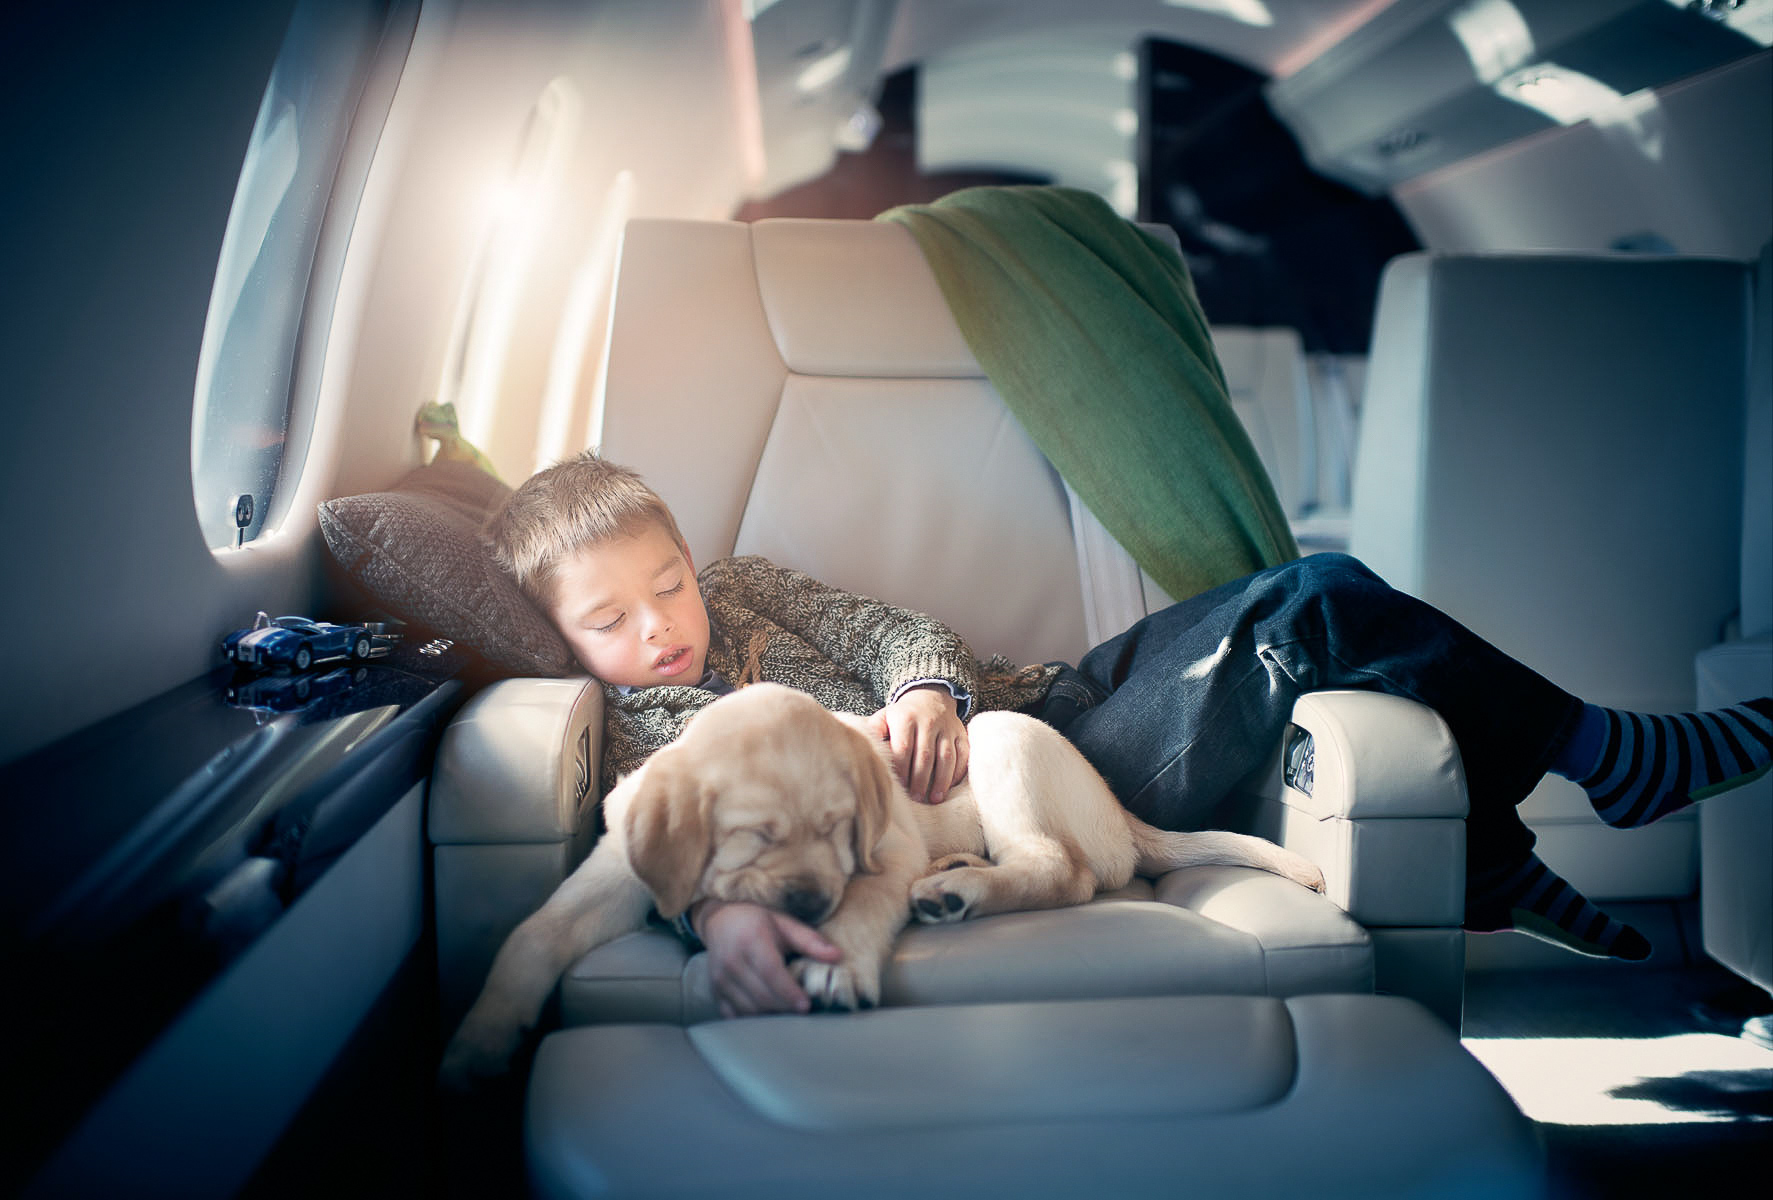 NetJets_A_Boy_and_his_Dog_1159-2-1